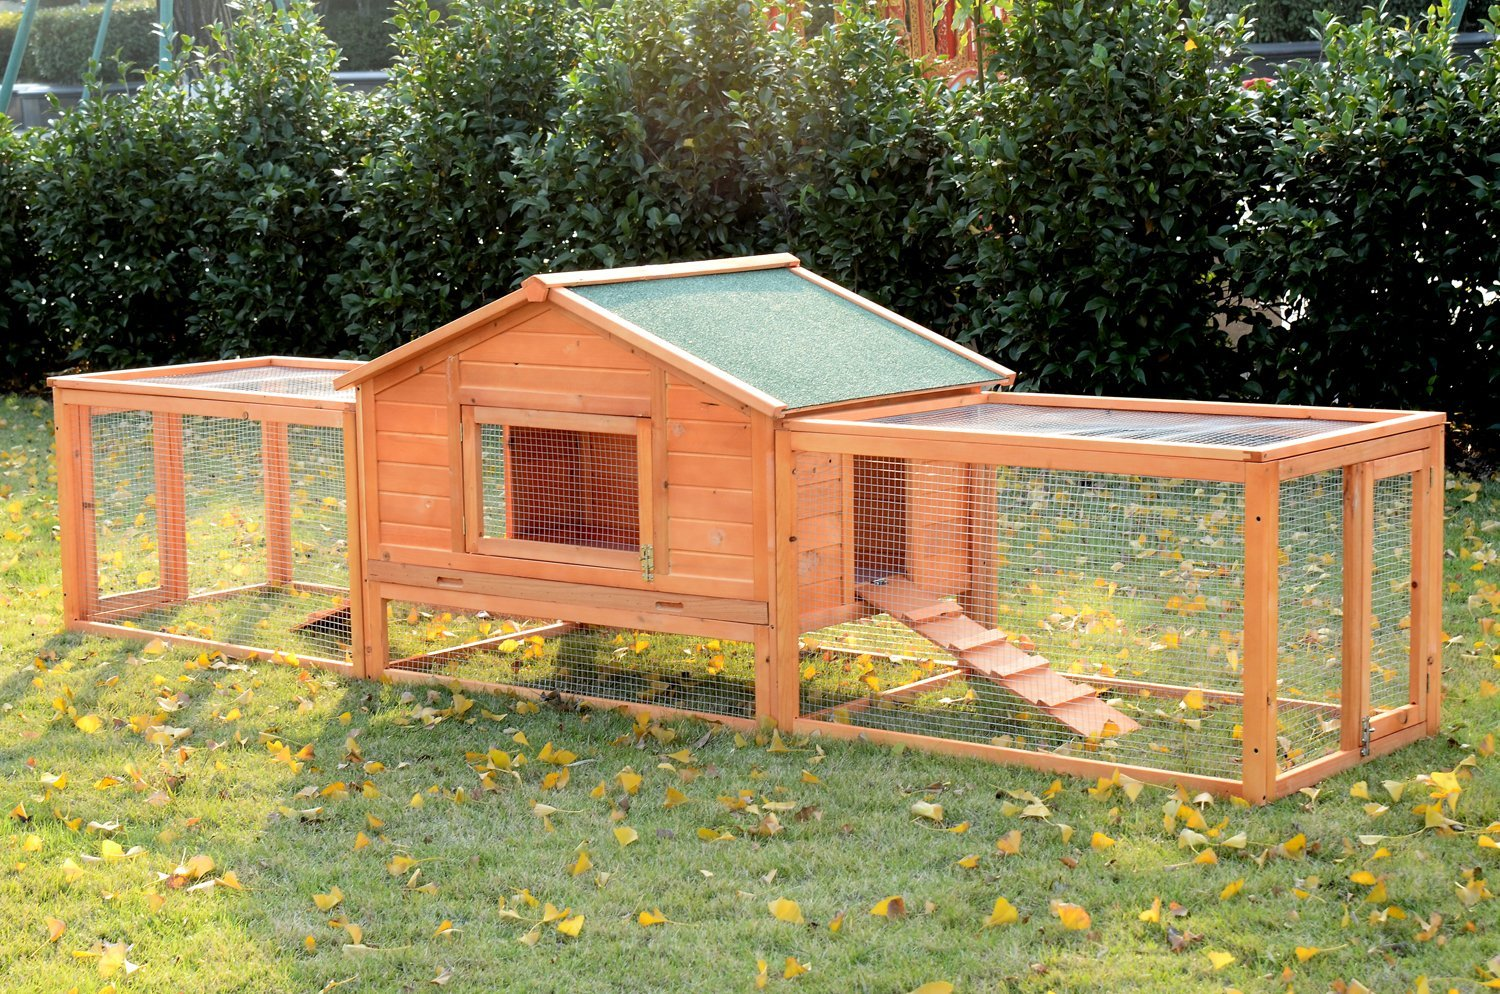 weatherproof bottom removed com for amazon with petsfit chicken dp year coop hutch supplies nesting box outdoor cleaning easy pet warranty can hutches be